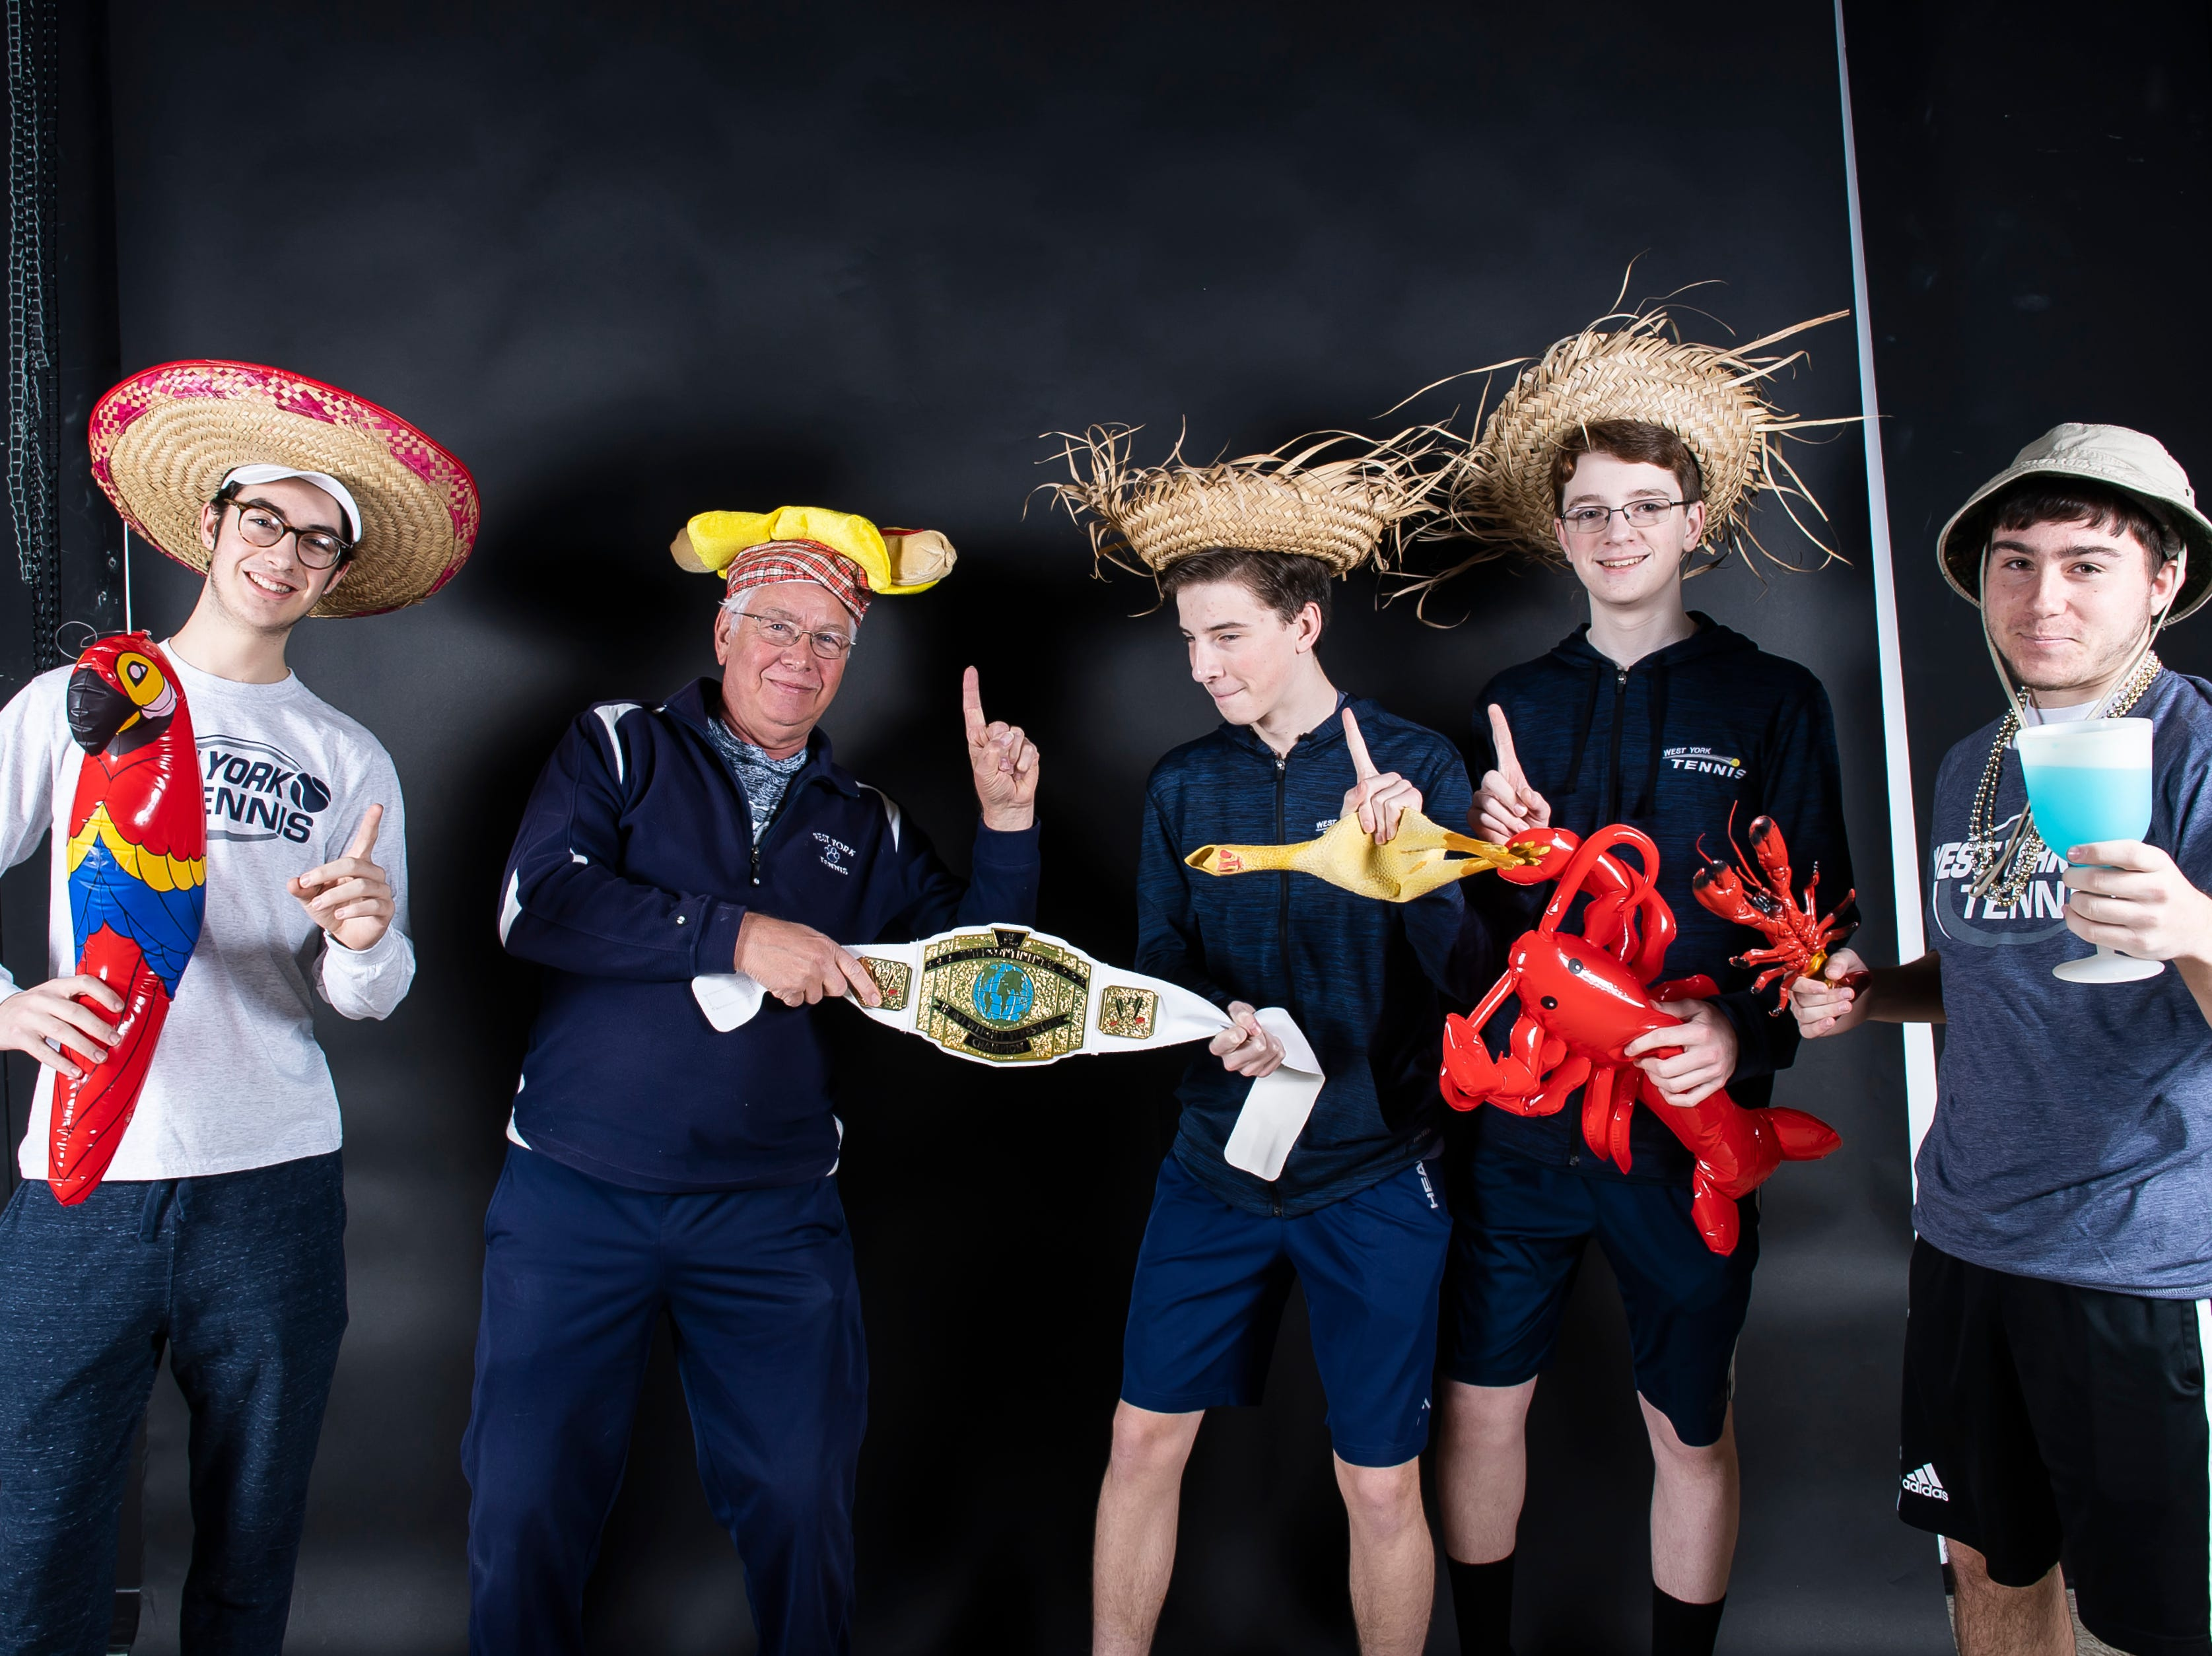 (From left) West York tennis team's Brendan Guy, coach Pete Kerns, Augie Citrone, Jack Citrone and Griffin Conaway pose in the GameTimePA photo booth during spring sports media day in York Sunday, March 10, 2019.